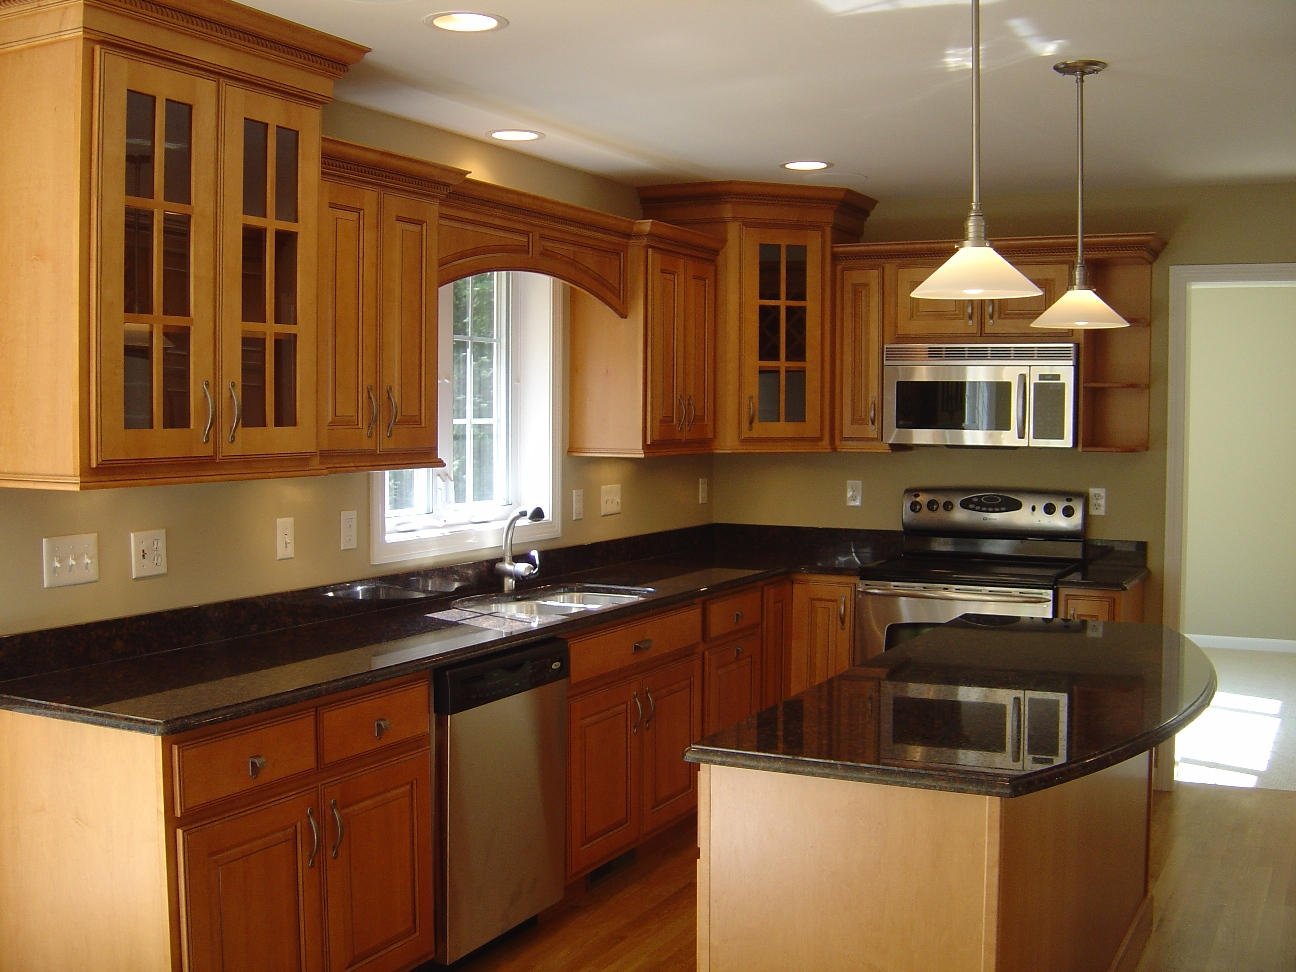 Old fashion Kitchen Remodel.jpg